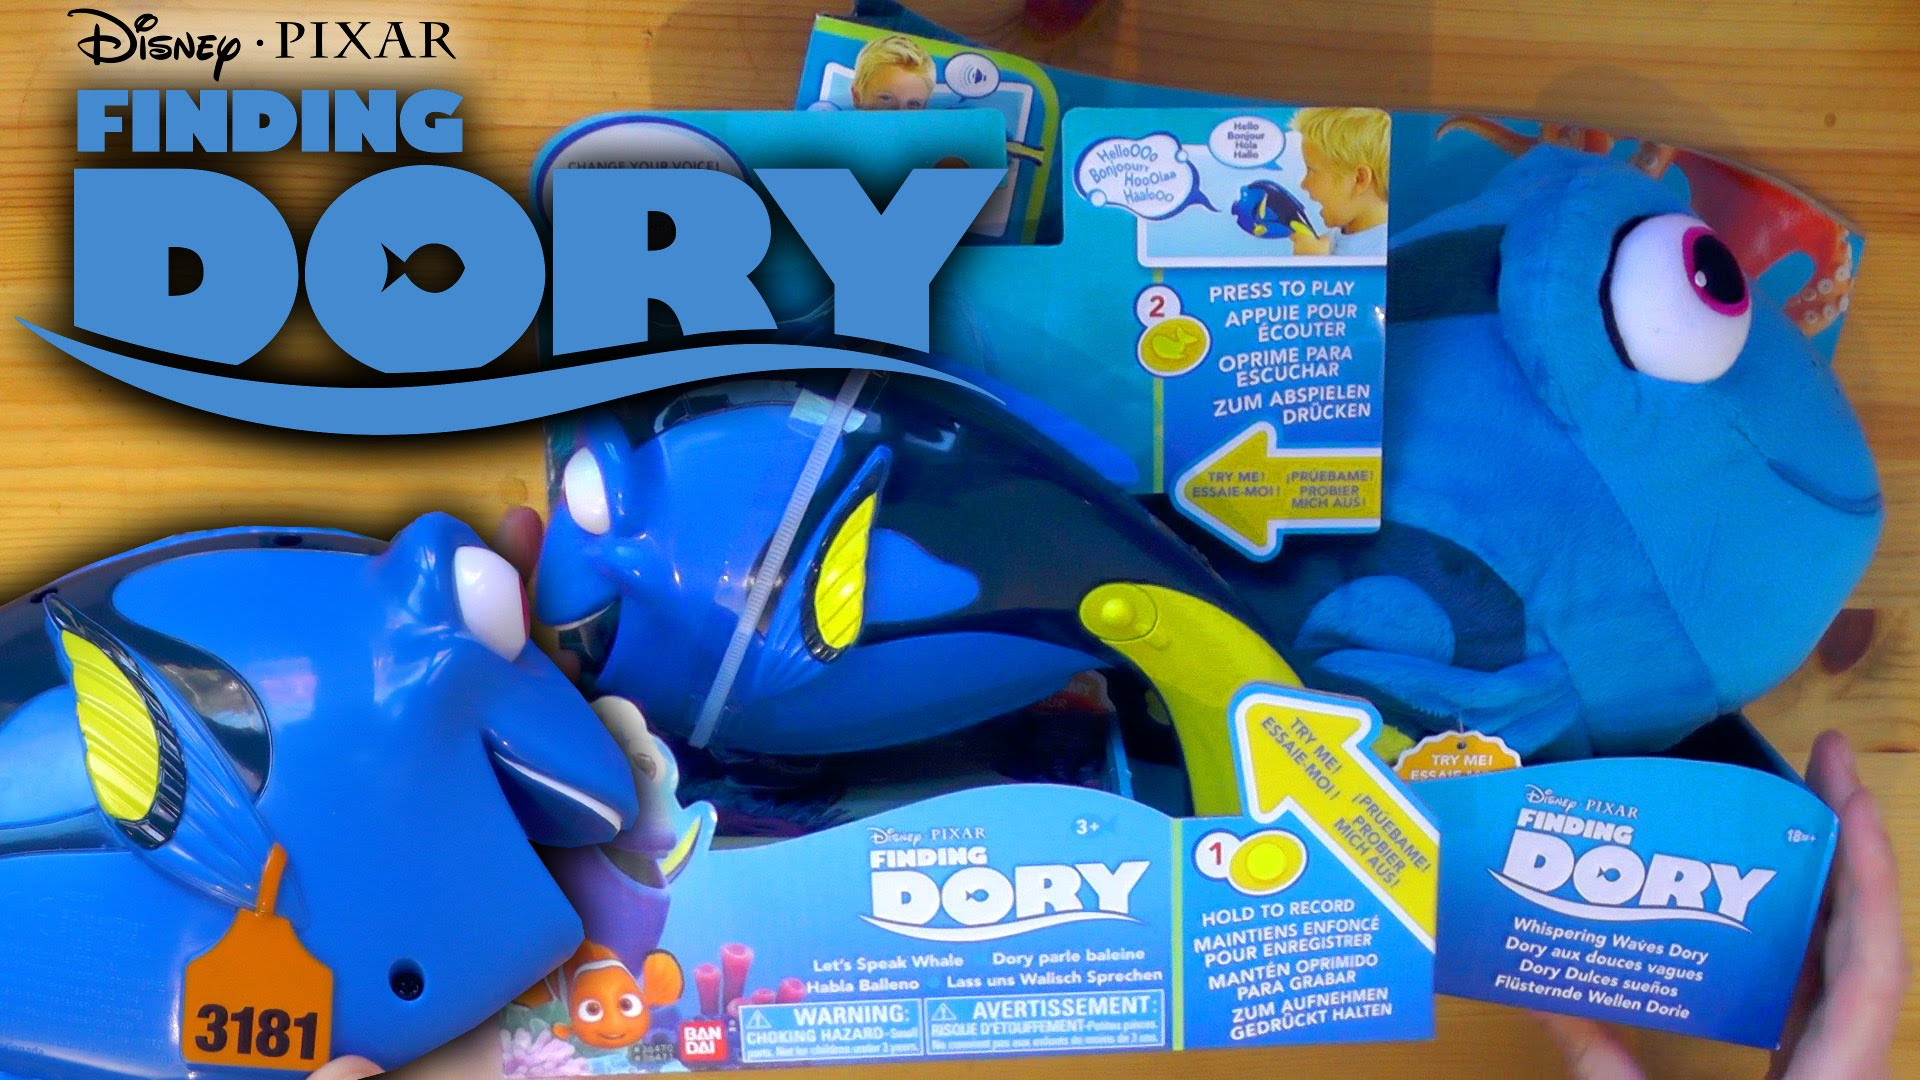 Finding Dory Toys – Whispering Waves Dory & Let's Speak Whale Dory (Disney / Bandai)